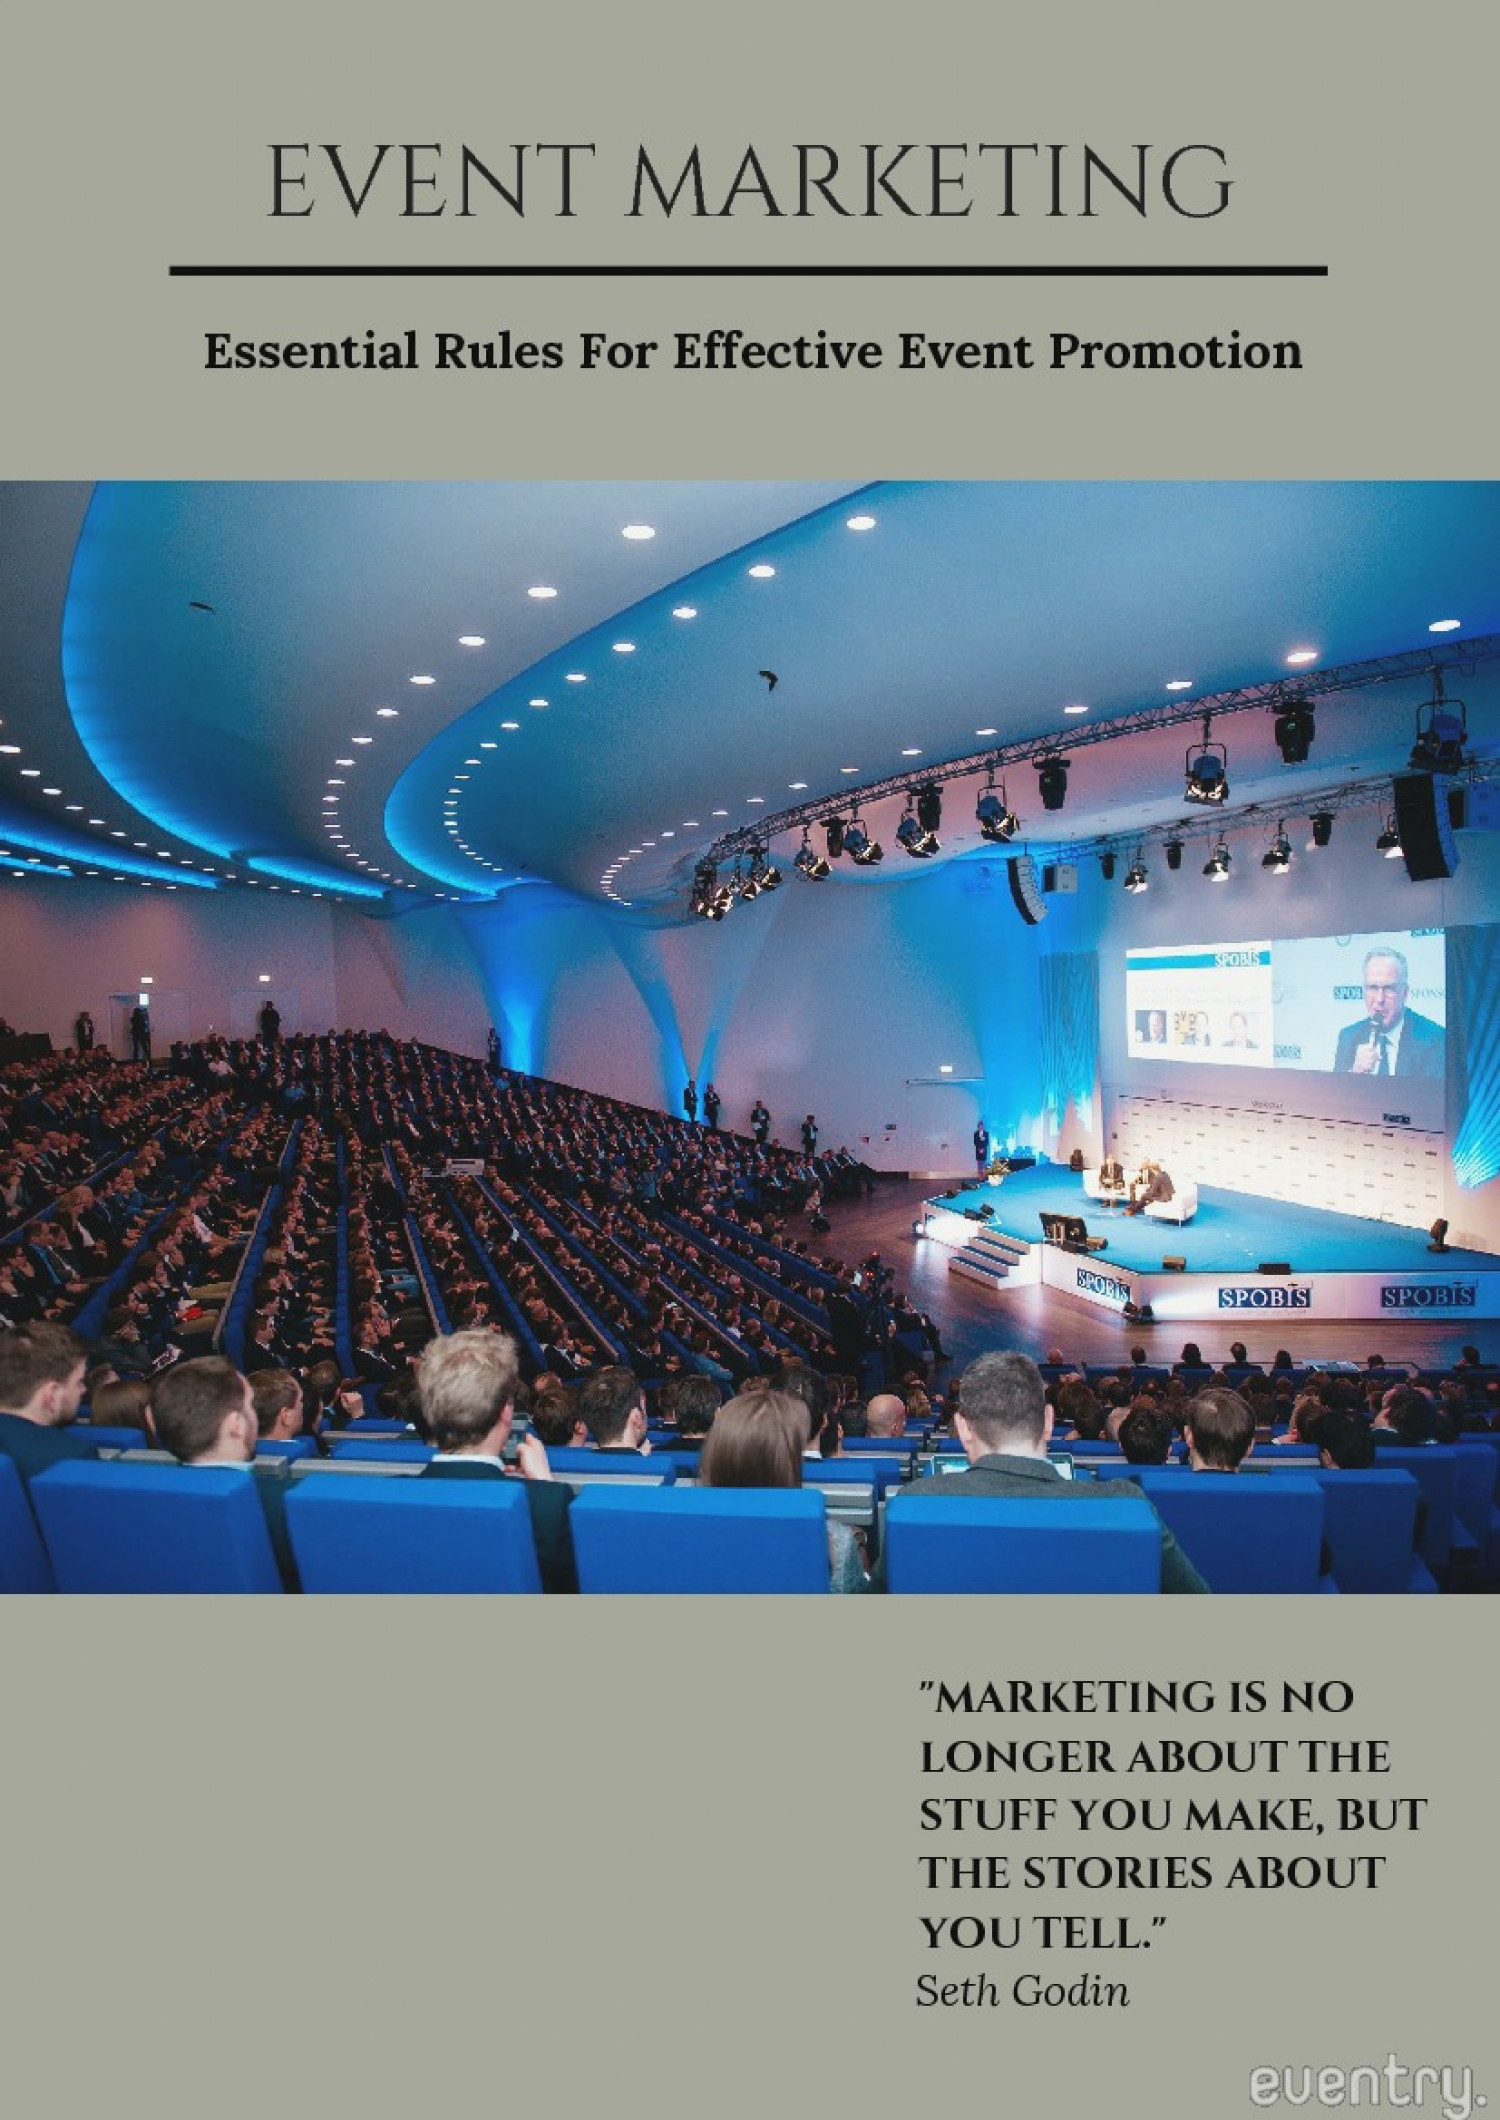 Event Marketing: Essential Rules For Effective Event Promotion Infographic